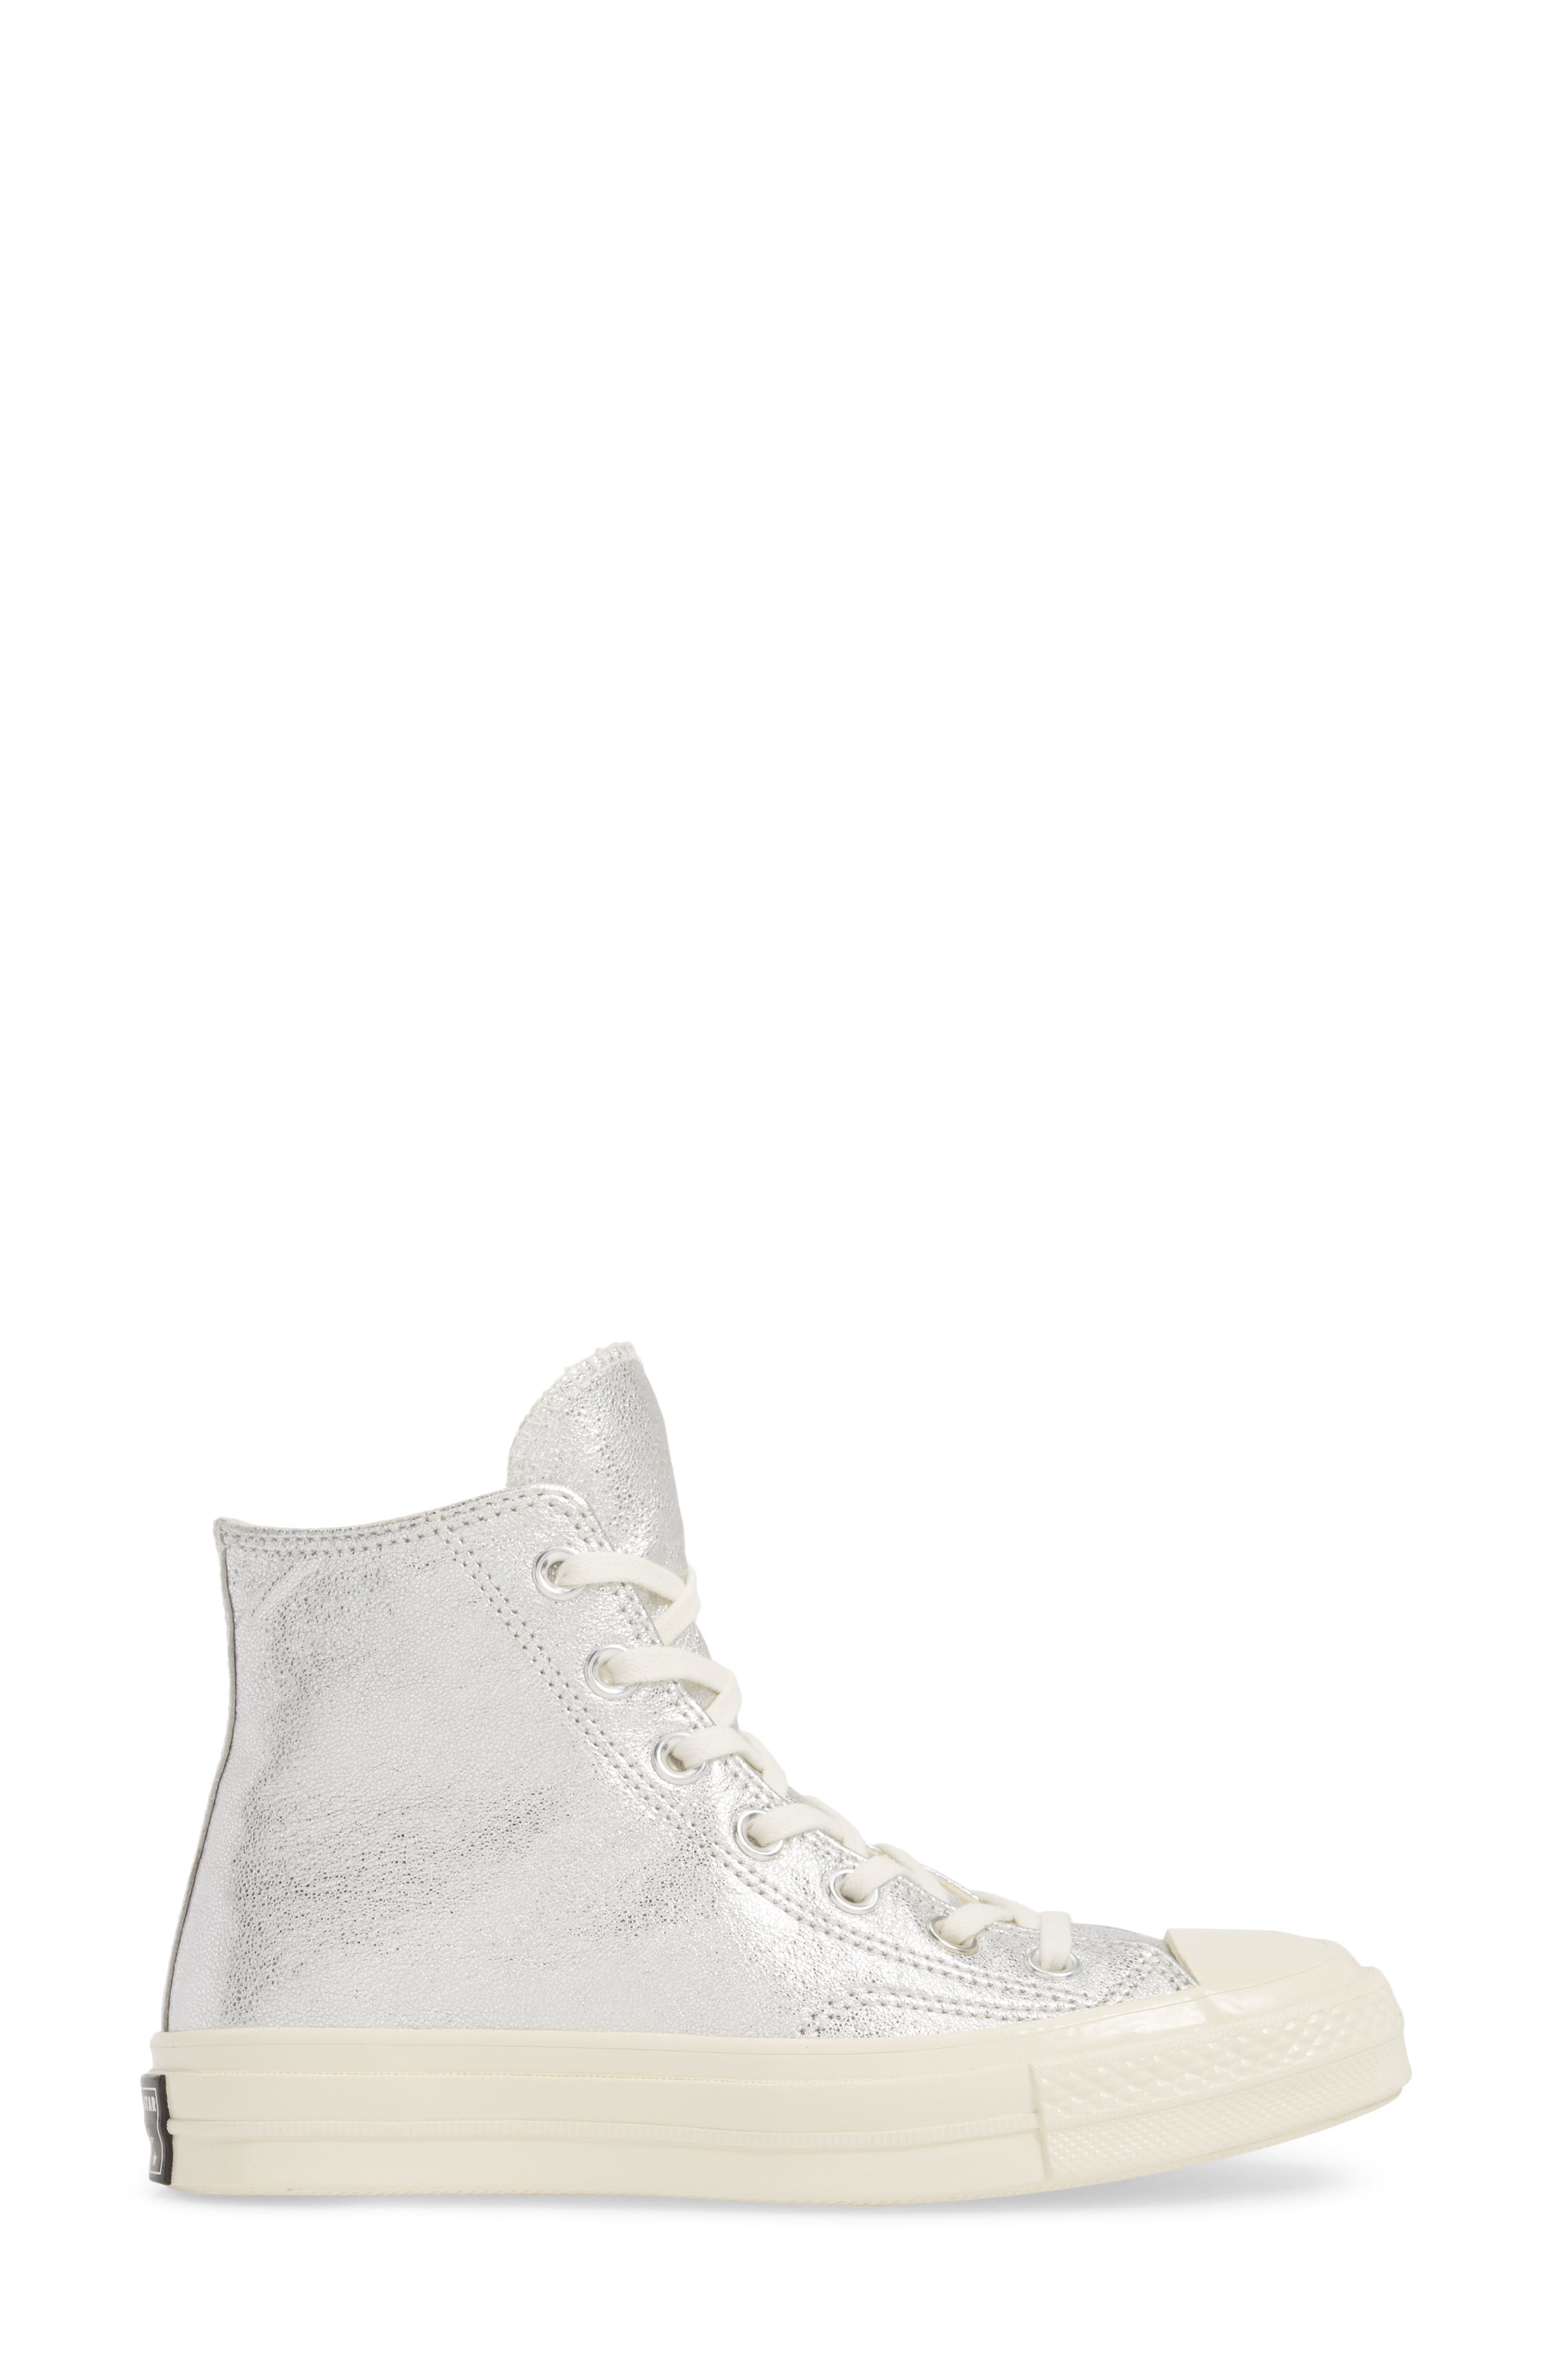 Chuck Taylor<sup>®</sup> All Star<sup>®</sup> Heavy Metal 70 High Top Sneaker,                             Alternate thumbnail 7, color,